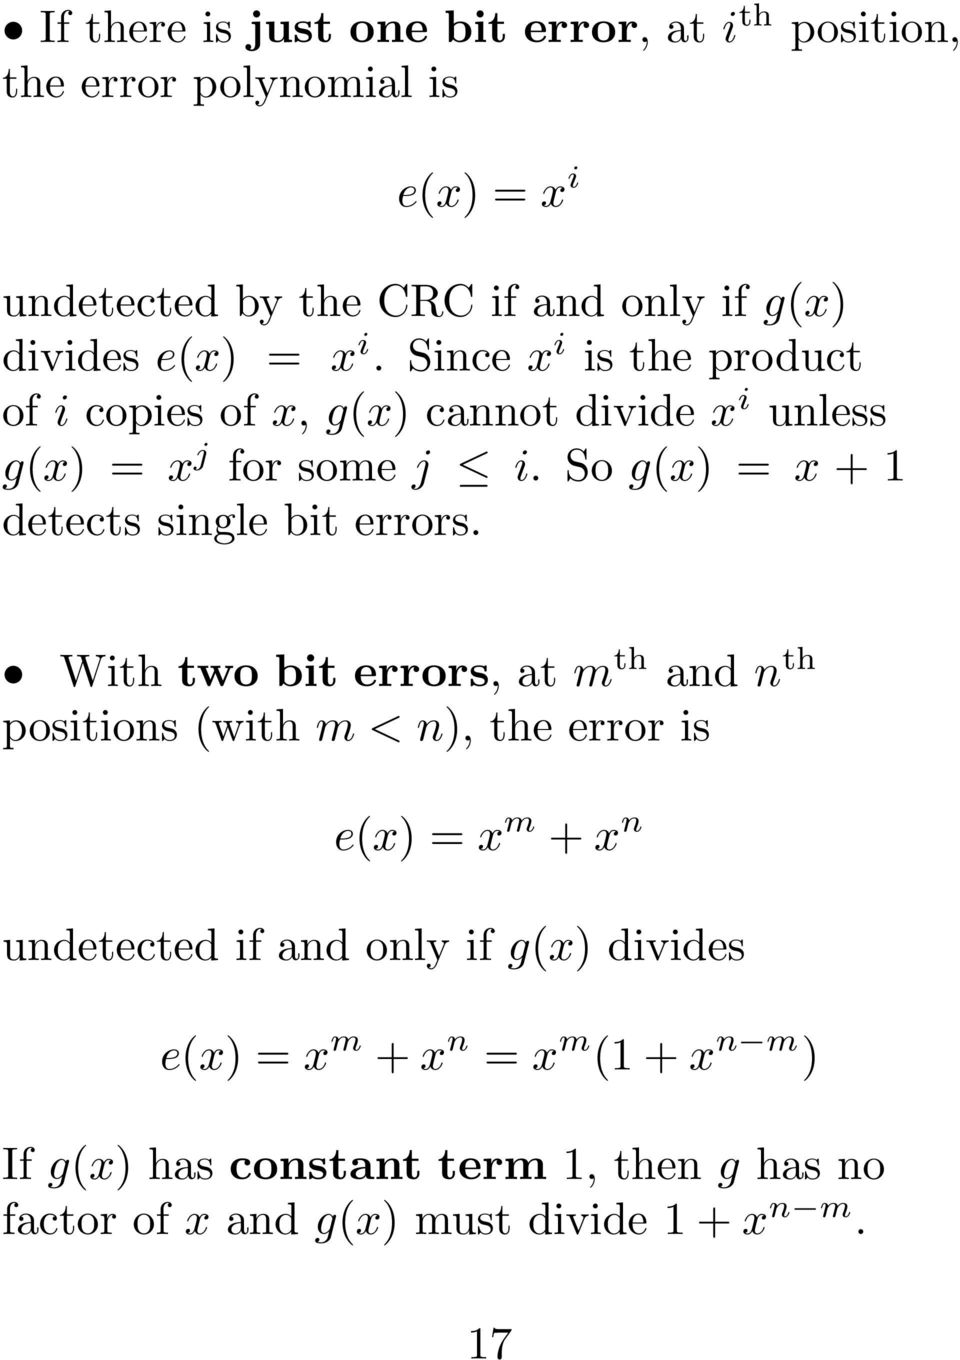 So g(x) = x + 1 detects single bit errors.